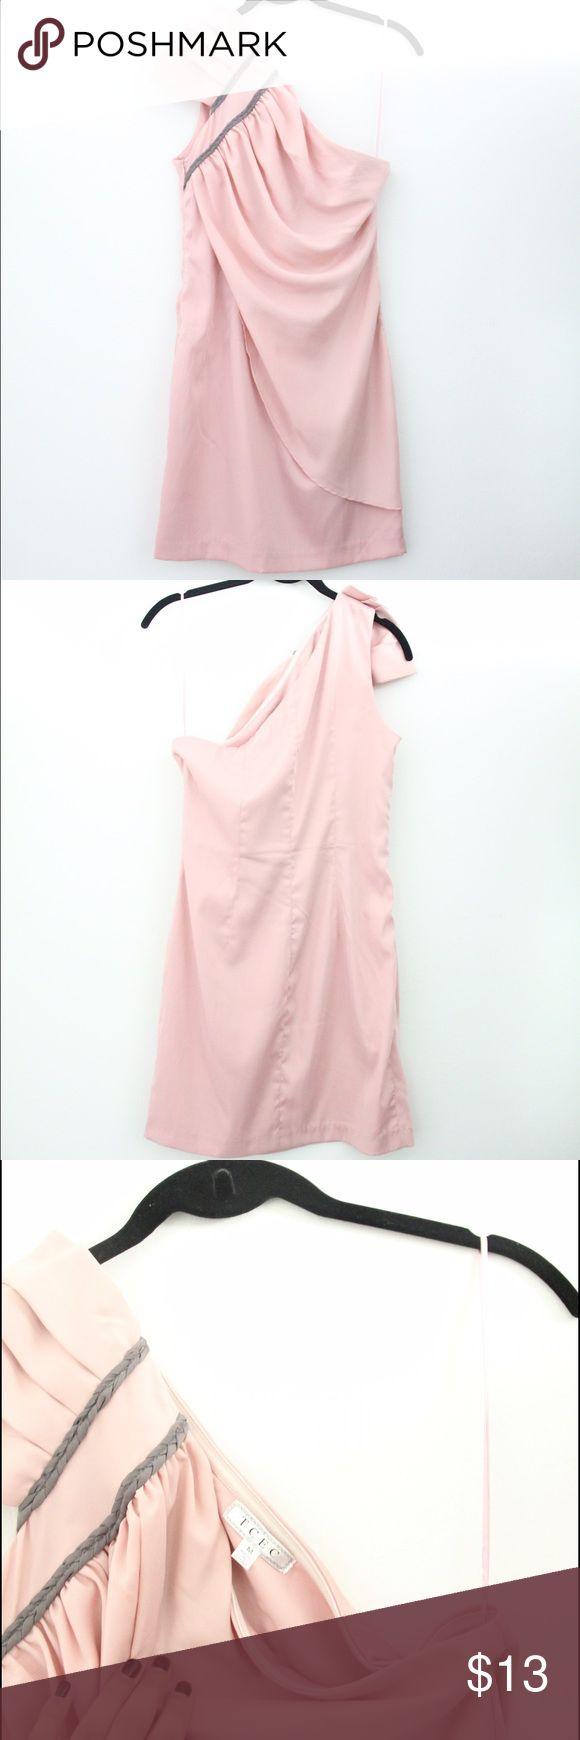 One Shoulder Pink Dress. No returns One Shoulder Pink Dress.No returns. Listed as ASOS for exposure. But from steps! ASOS Dresses One Shoulder